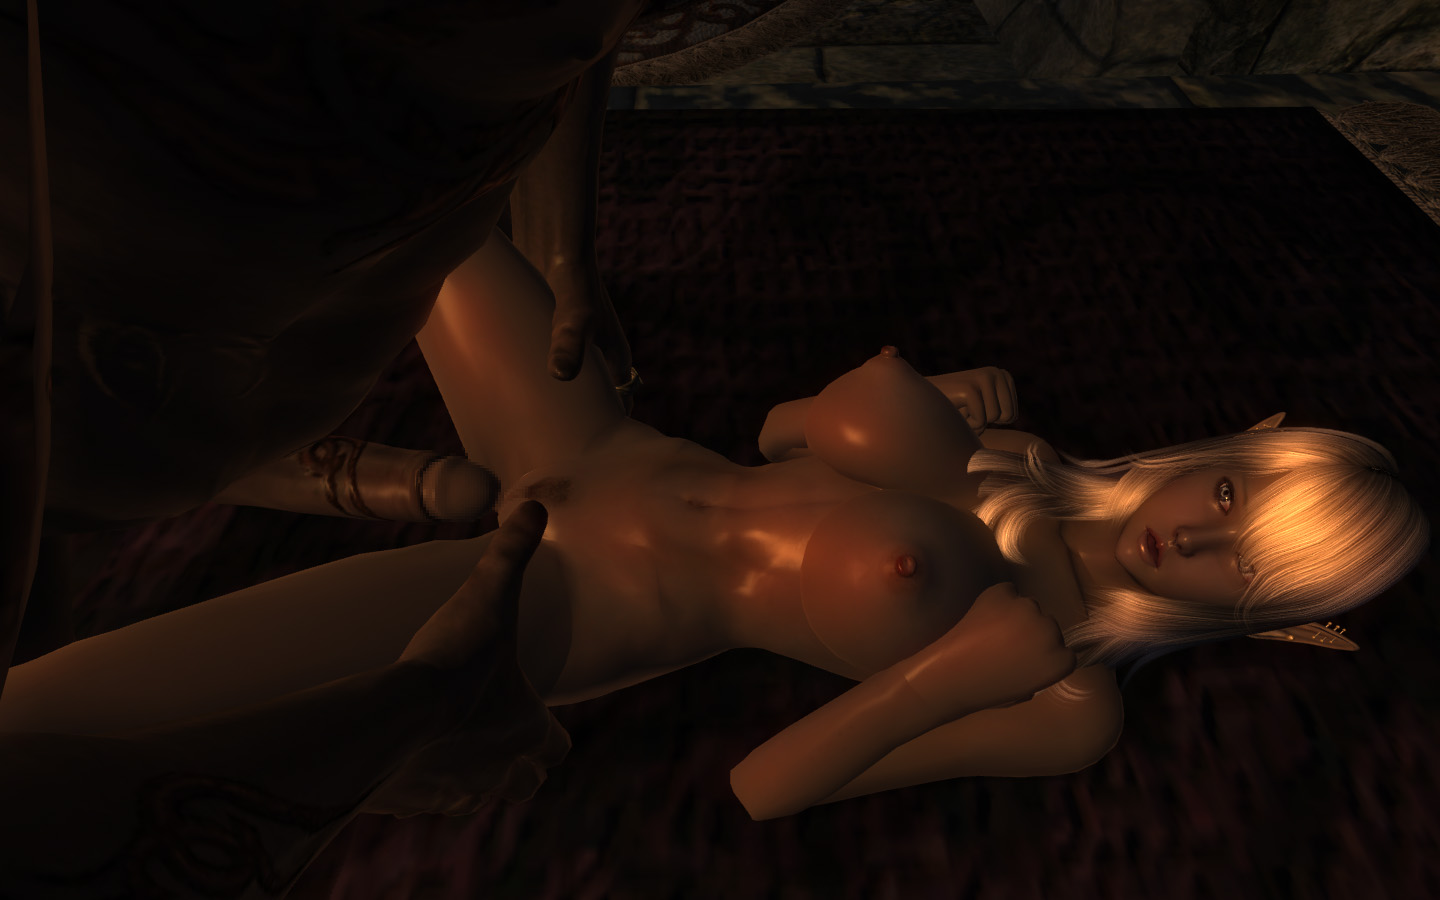 Fallout gay monster sex pics hentay scene